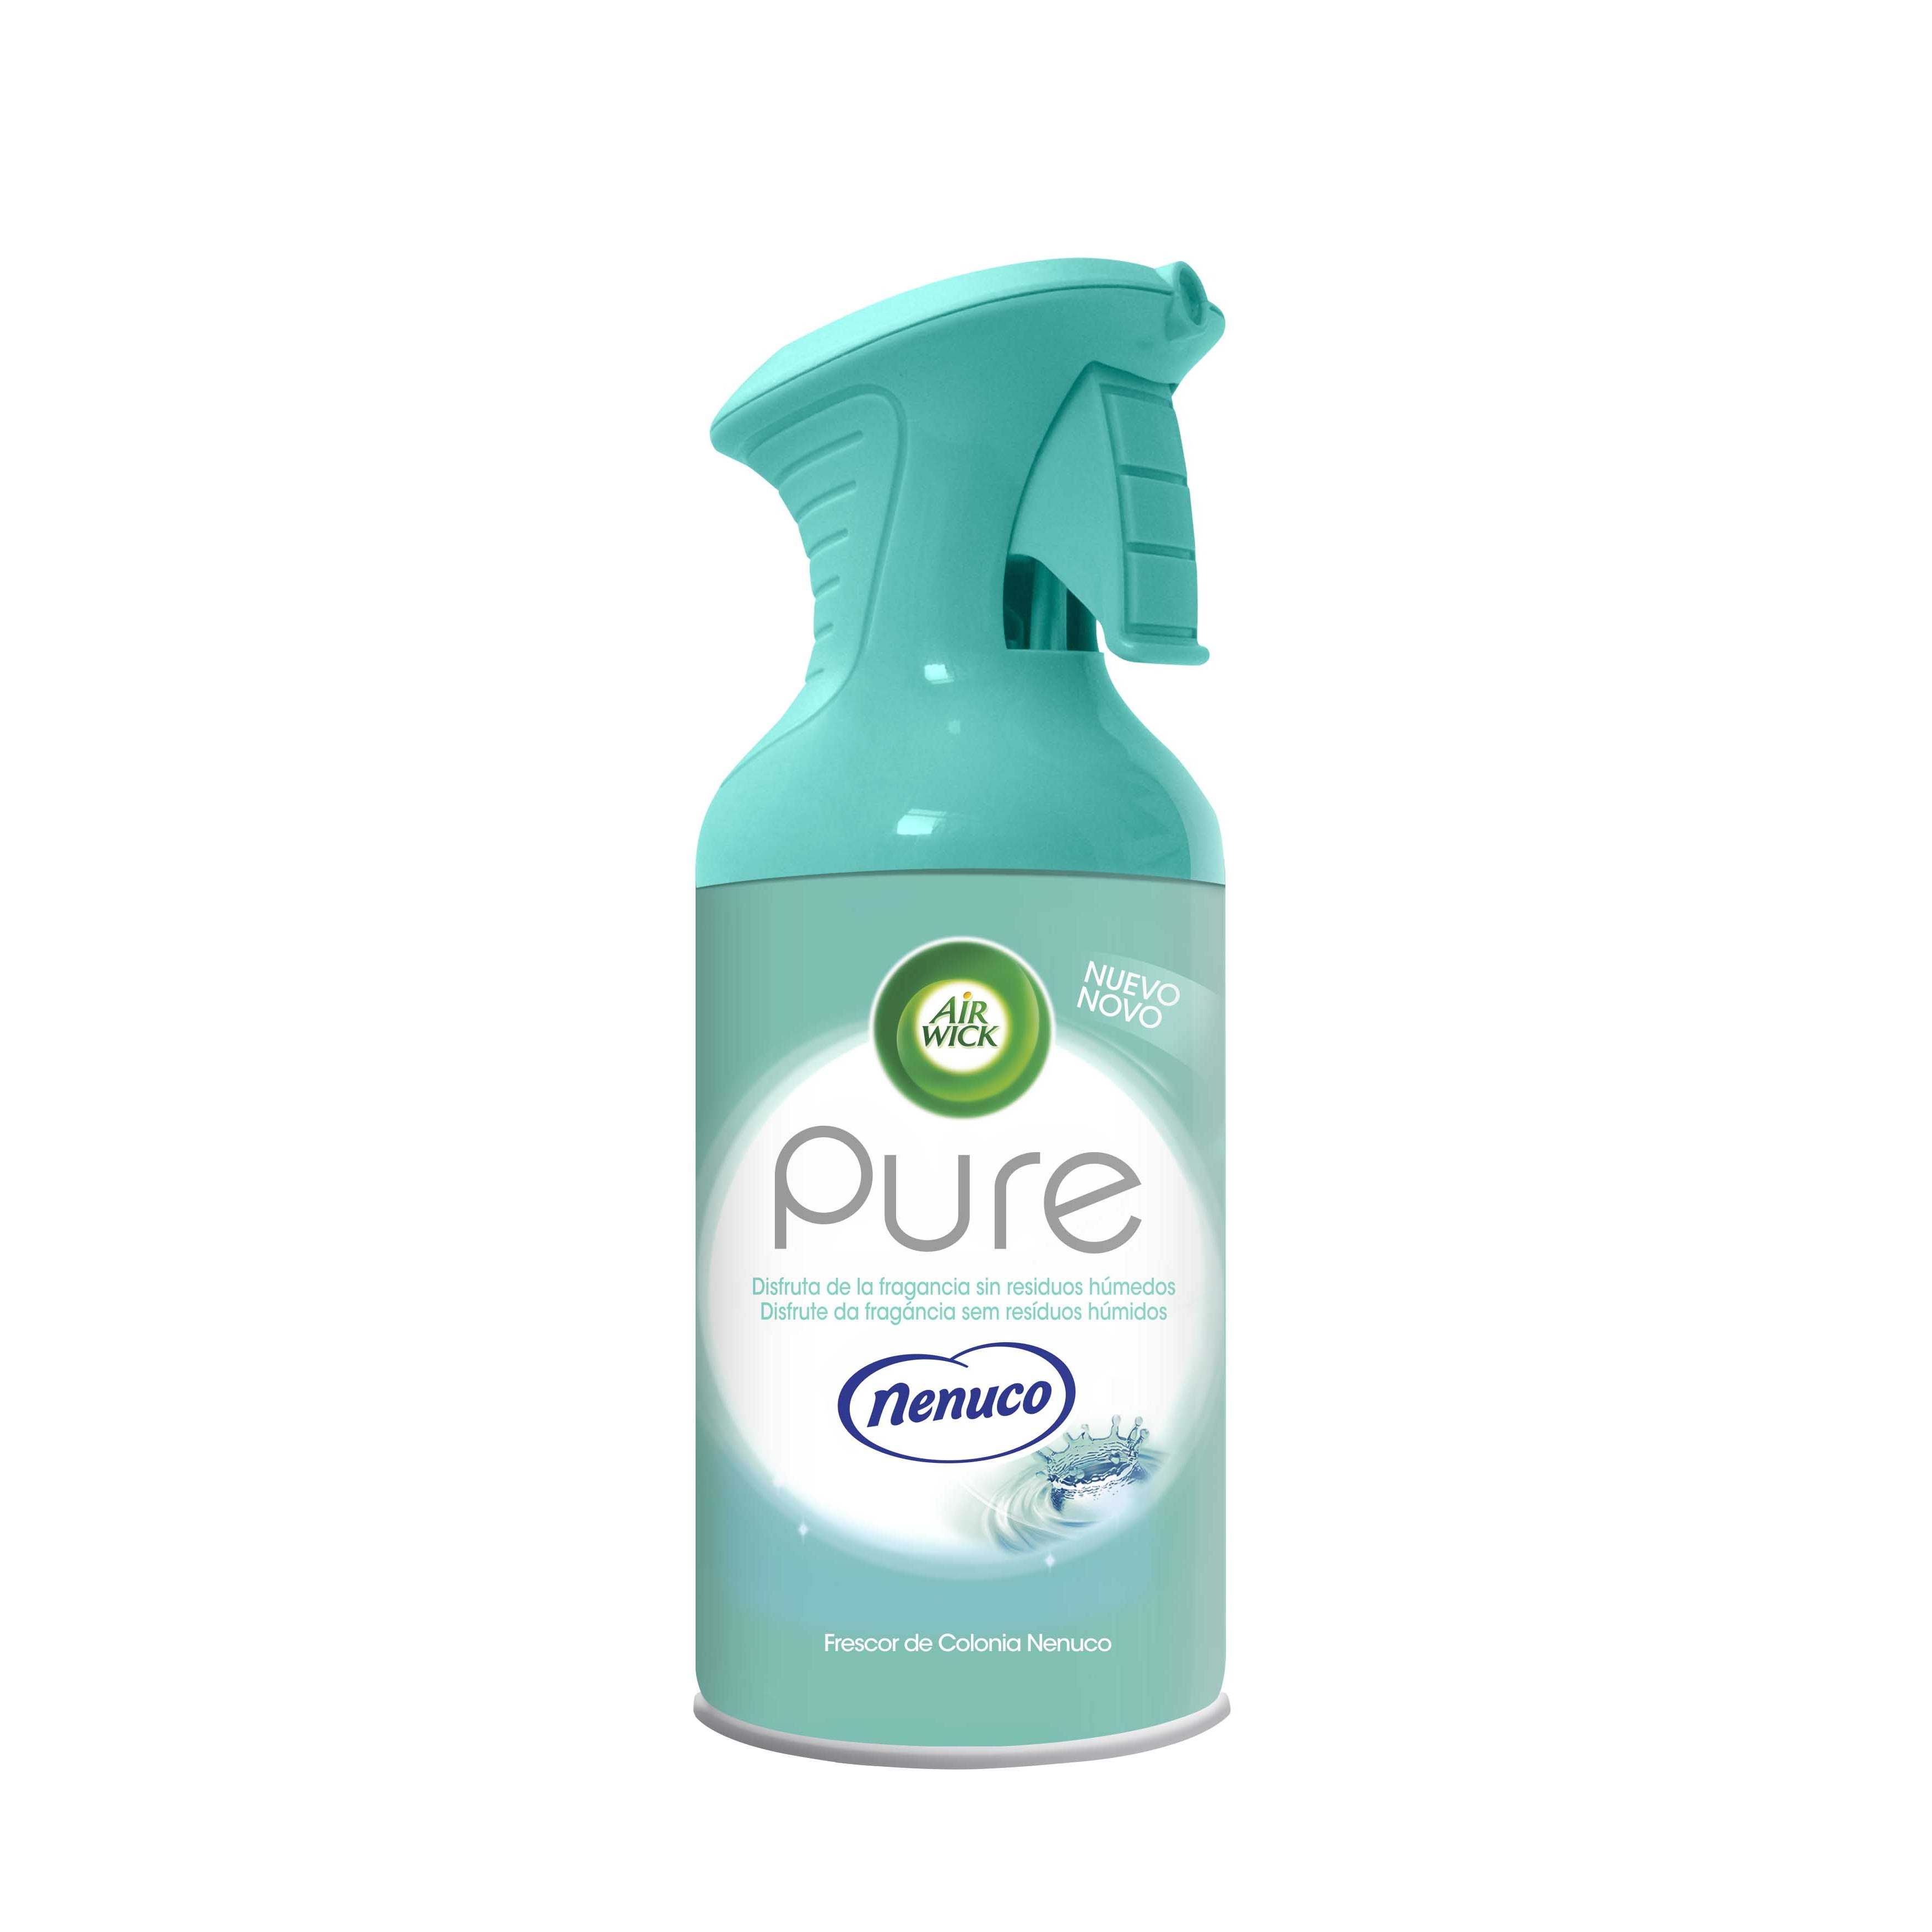 Air Wick ambientador pure nenuco bebe frescor colonia de 25cl. en spray